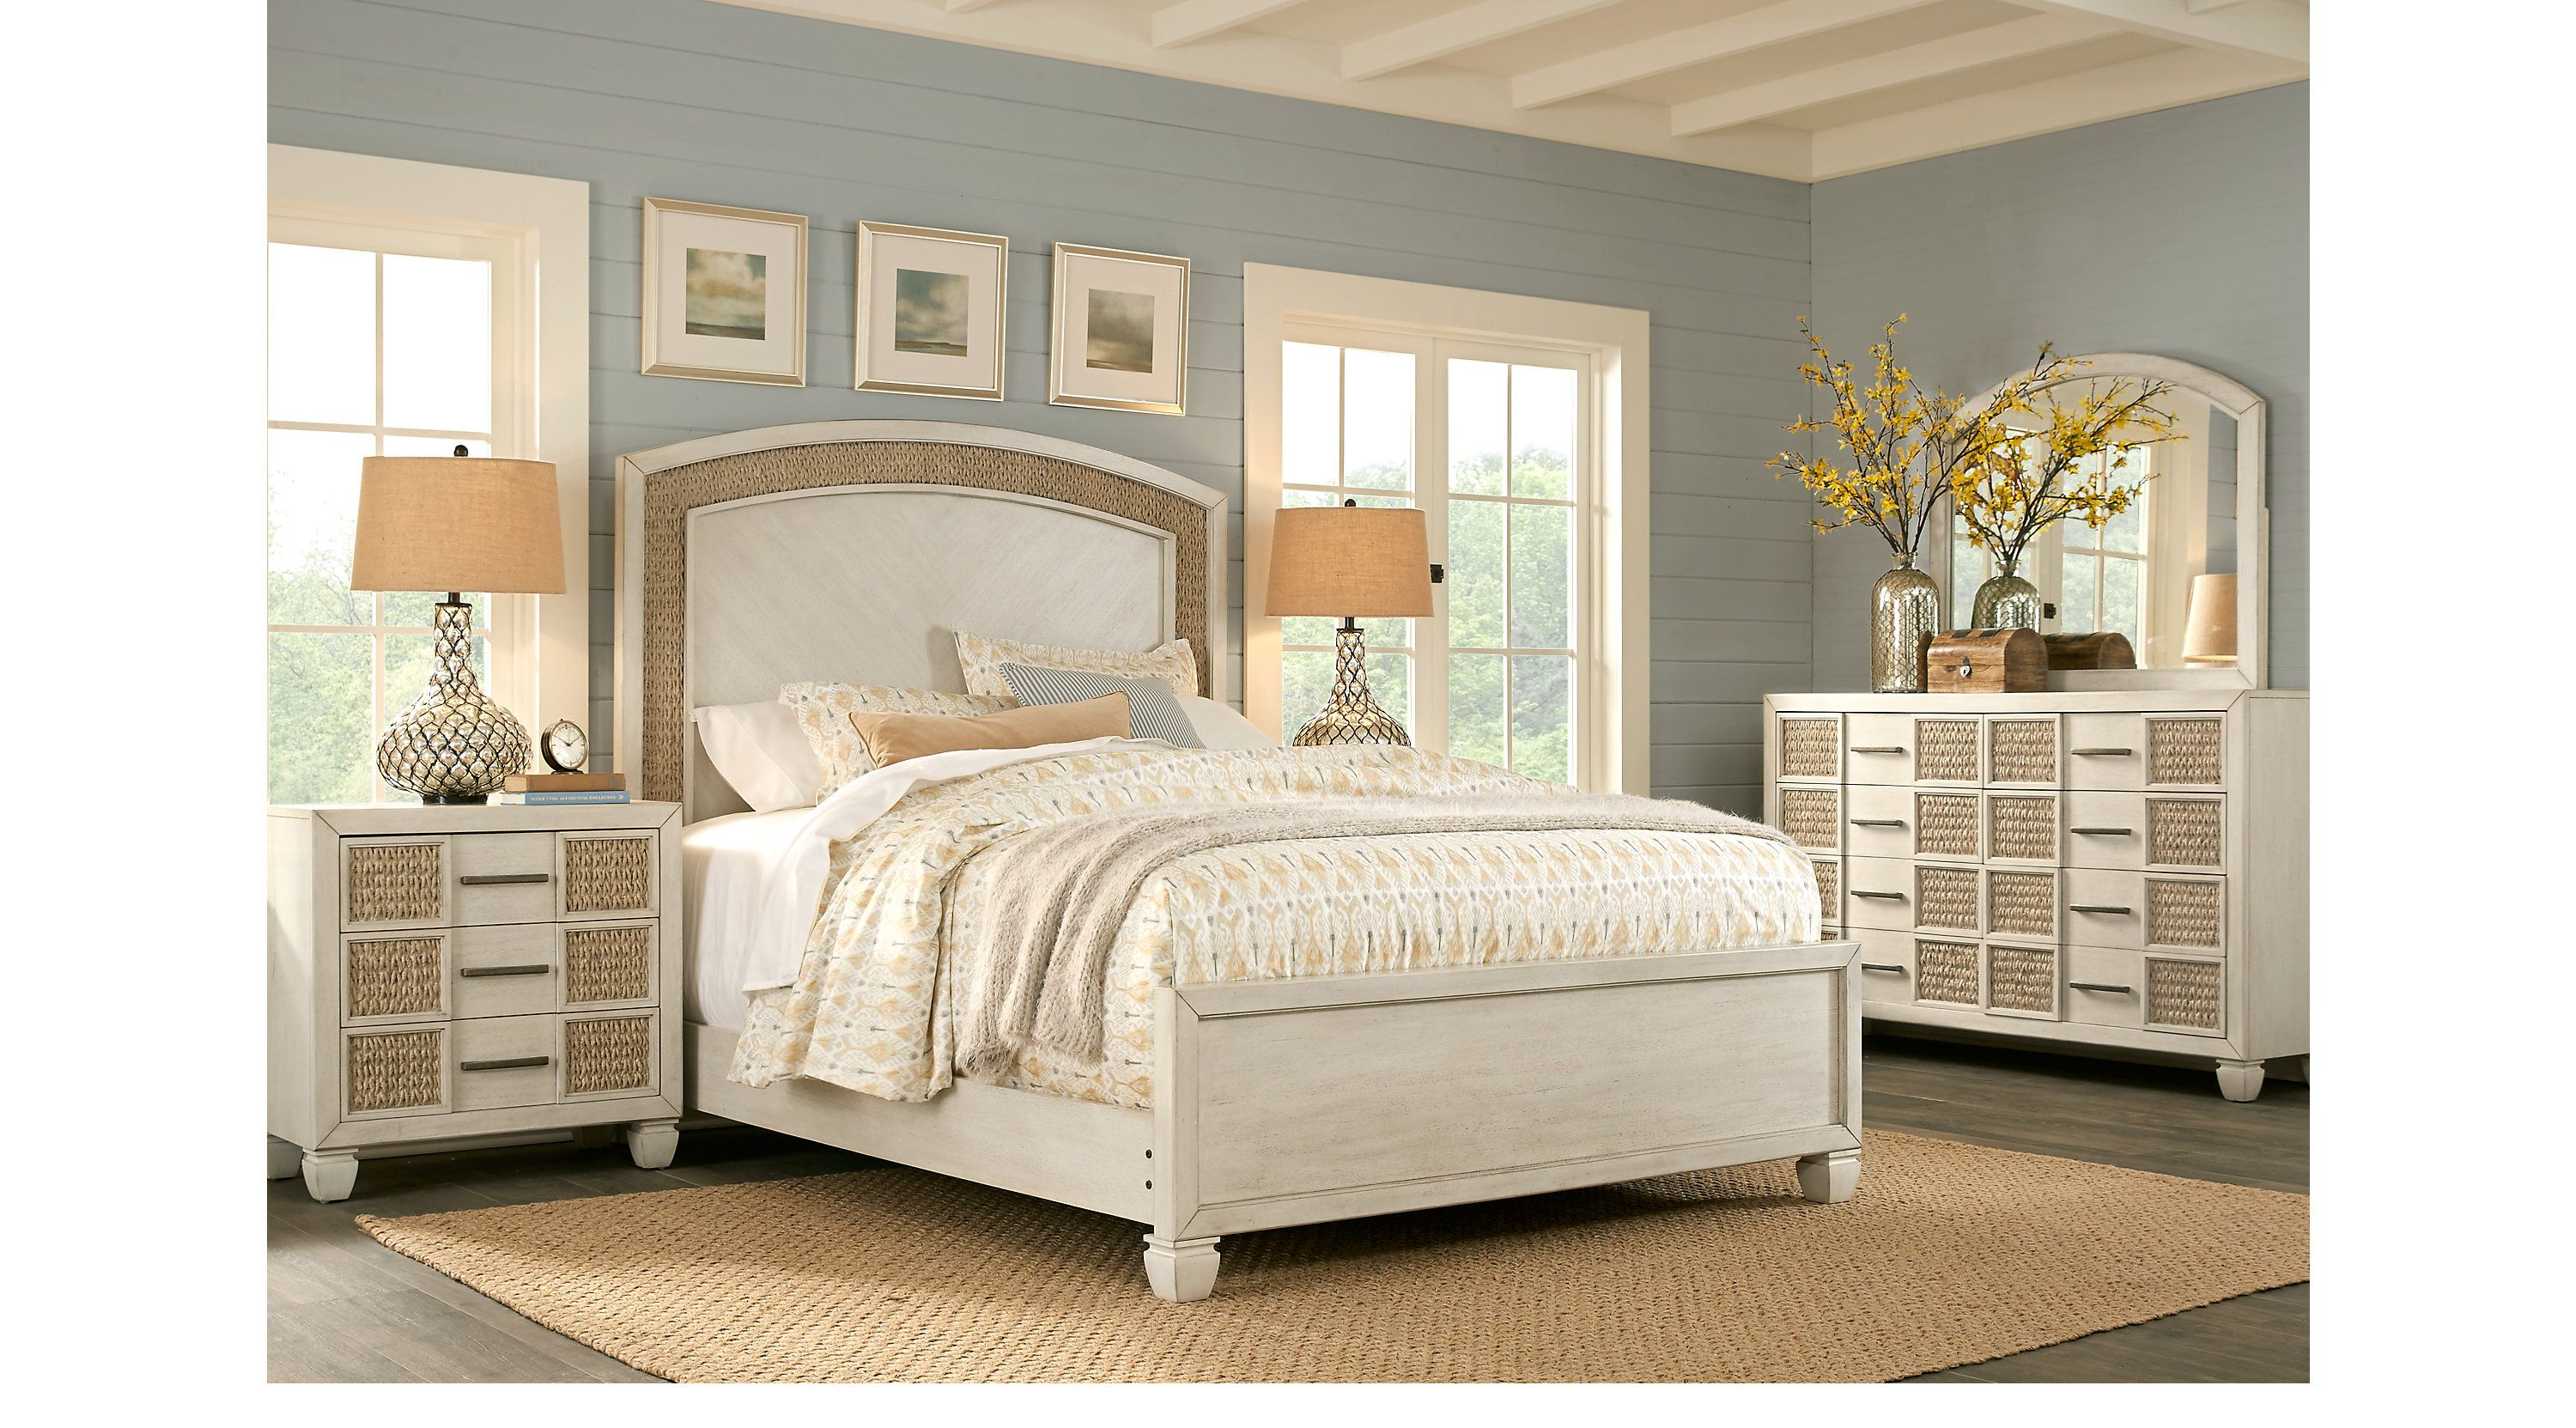 king bedroom sets  rooms to go  coastal bay white 7 pc